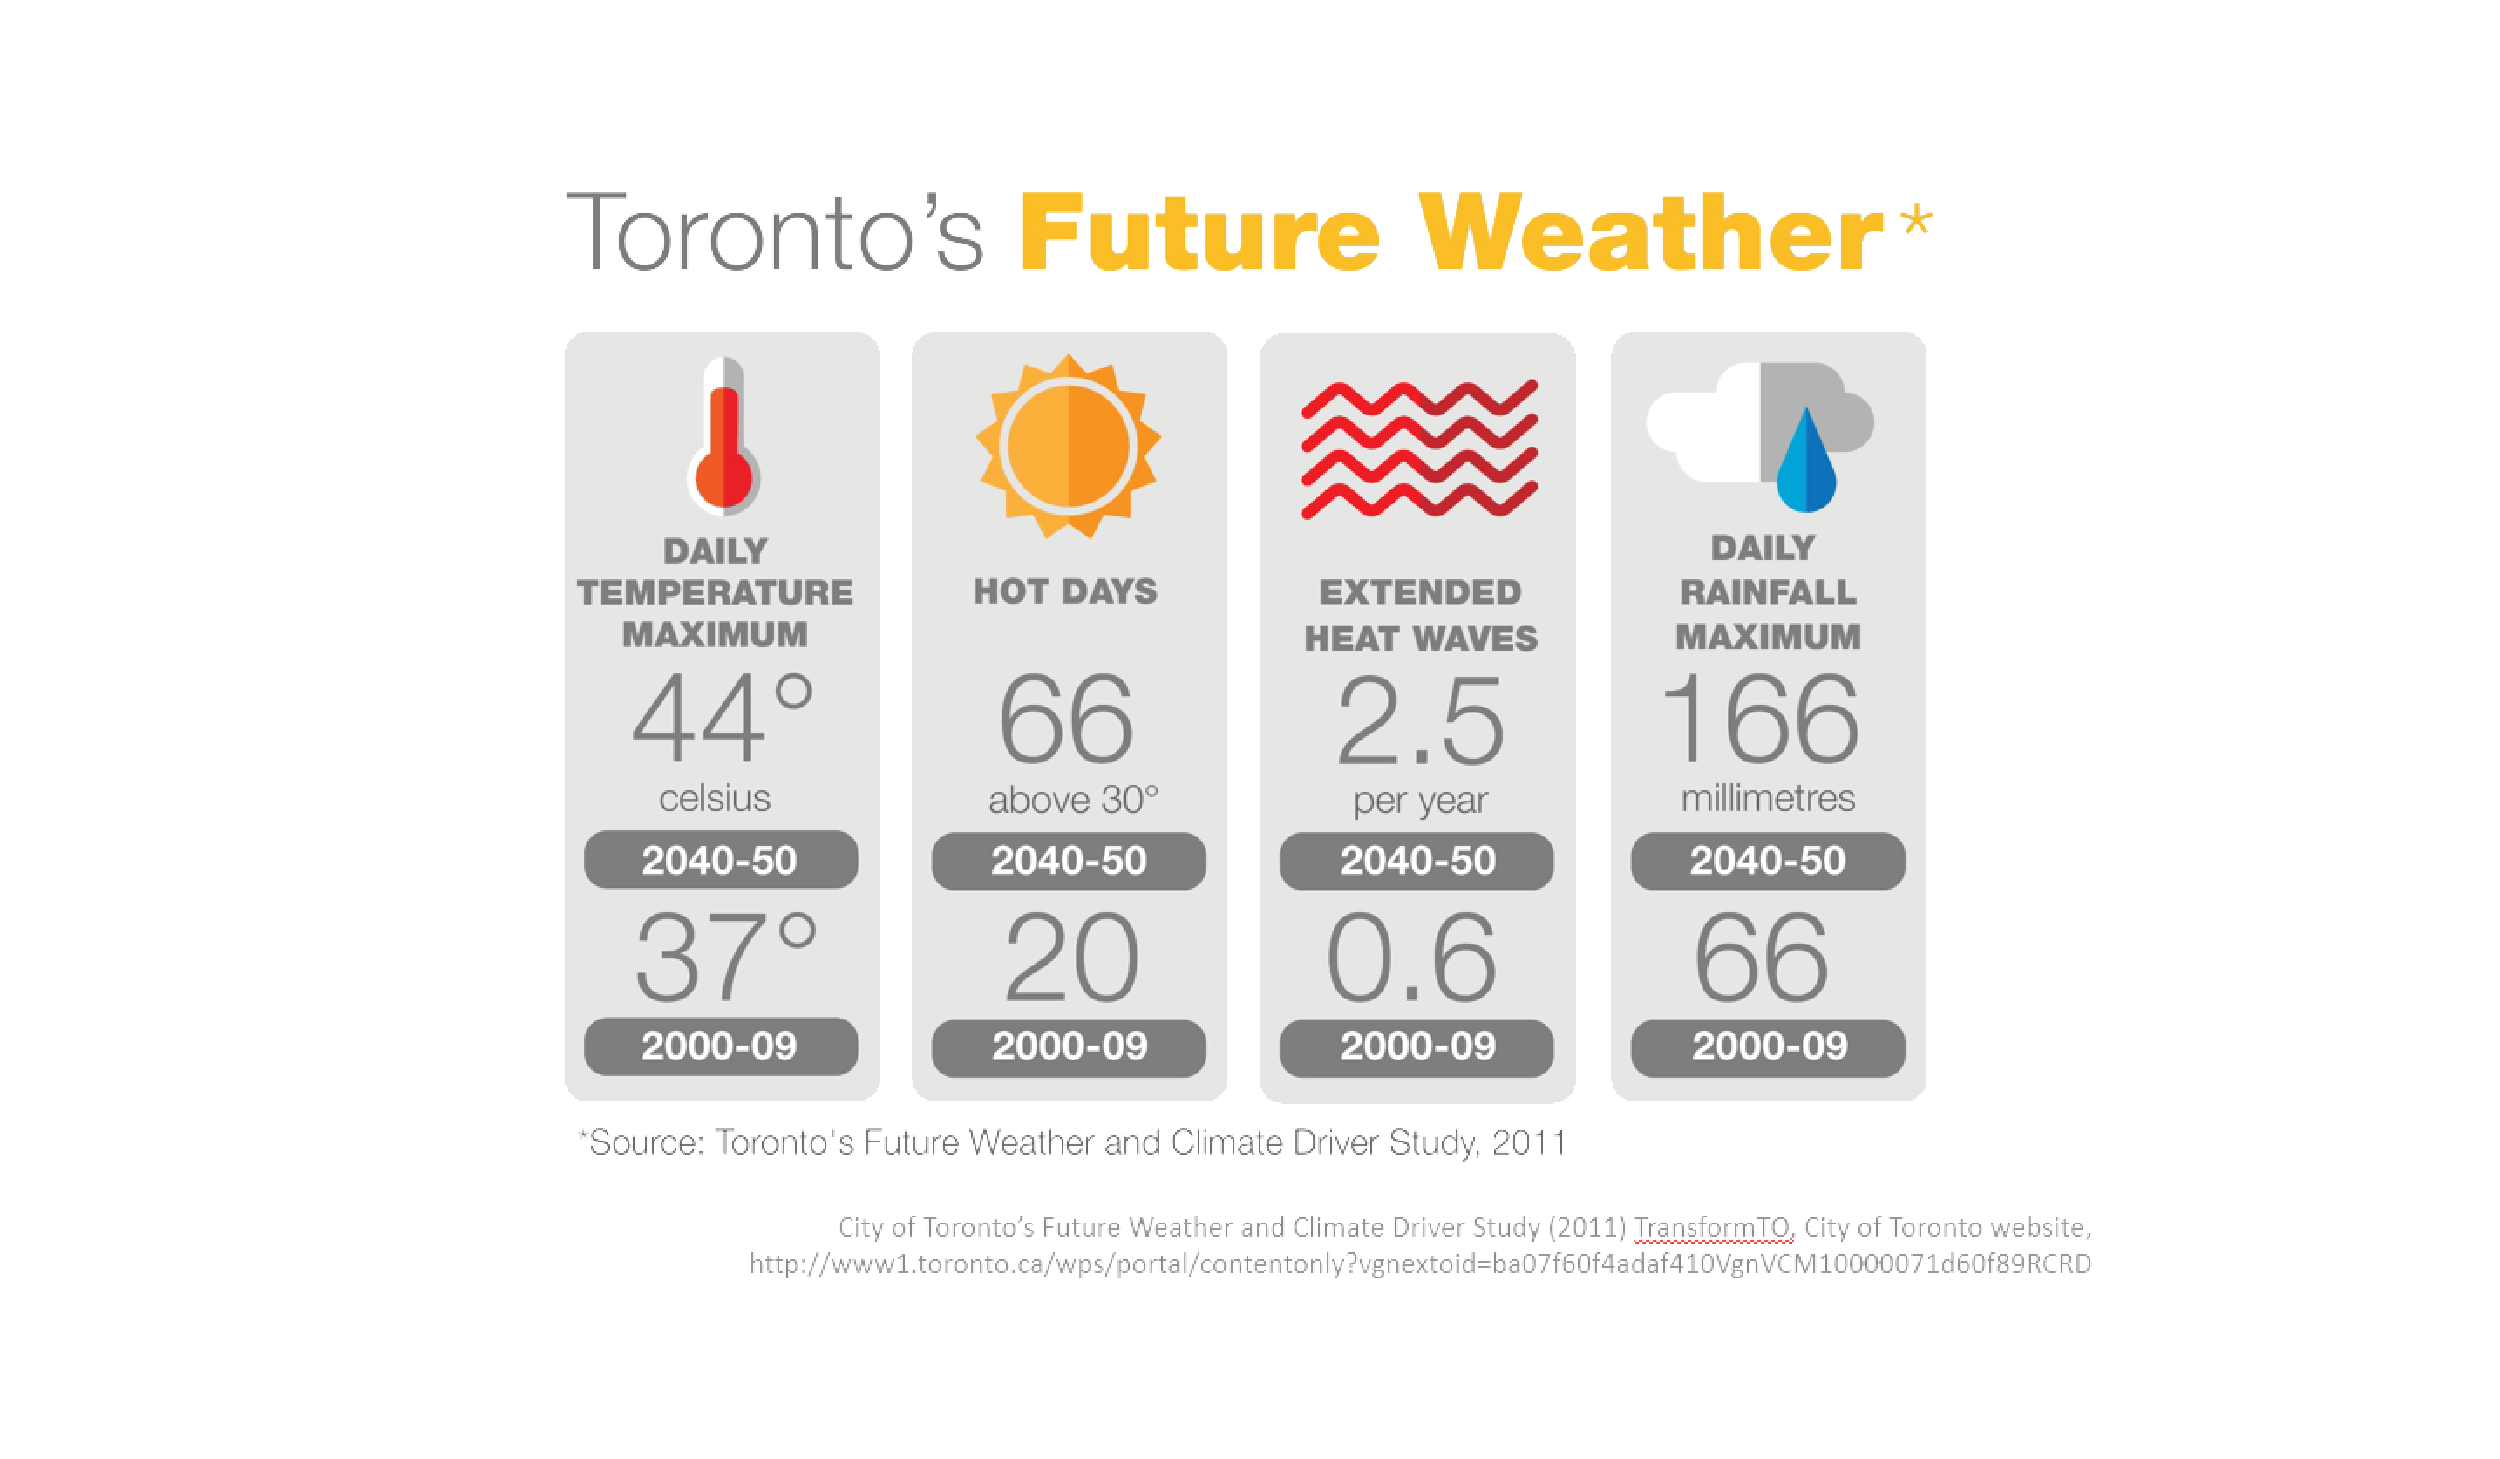 A graphic showing Toronto's future weather. 2050: 44 degrees celsius daily temperature maximum, 66 days above 30 degrees, 2.5 extended heat waves per year. 166mm daily rainfall maximum